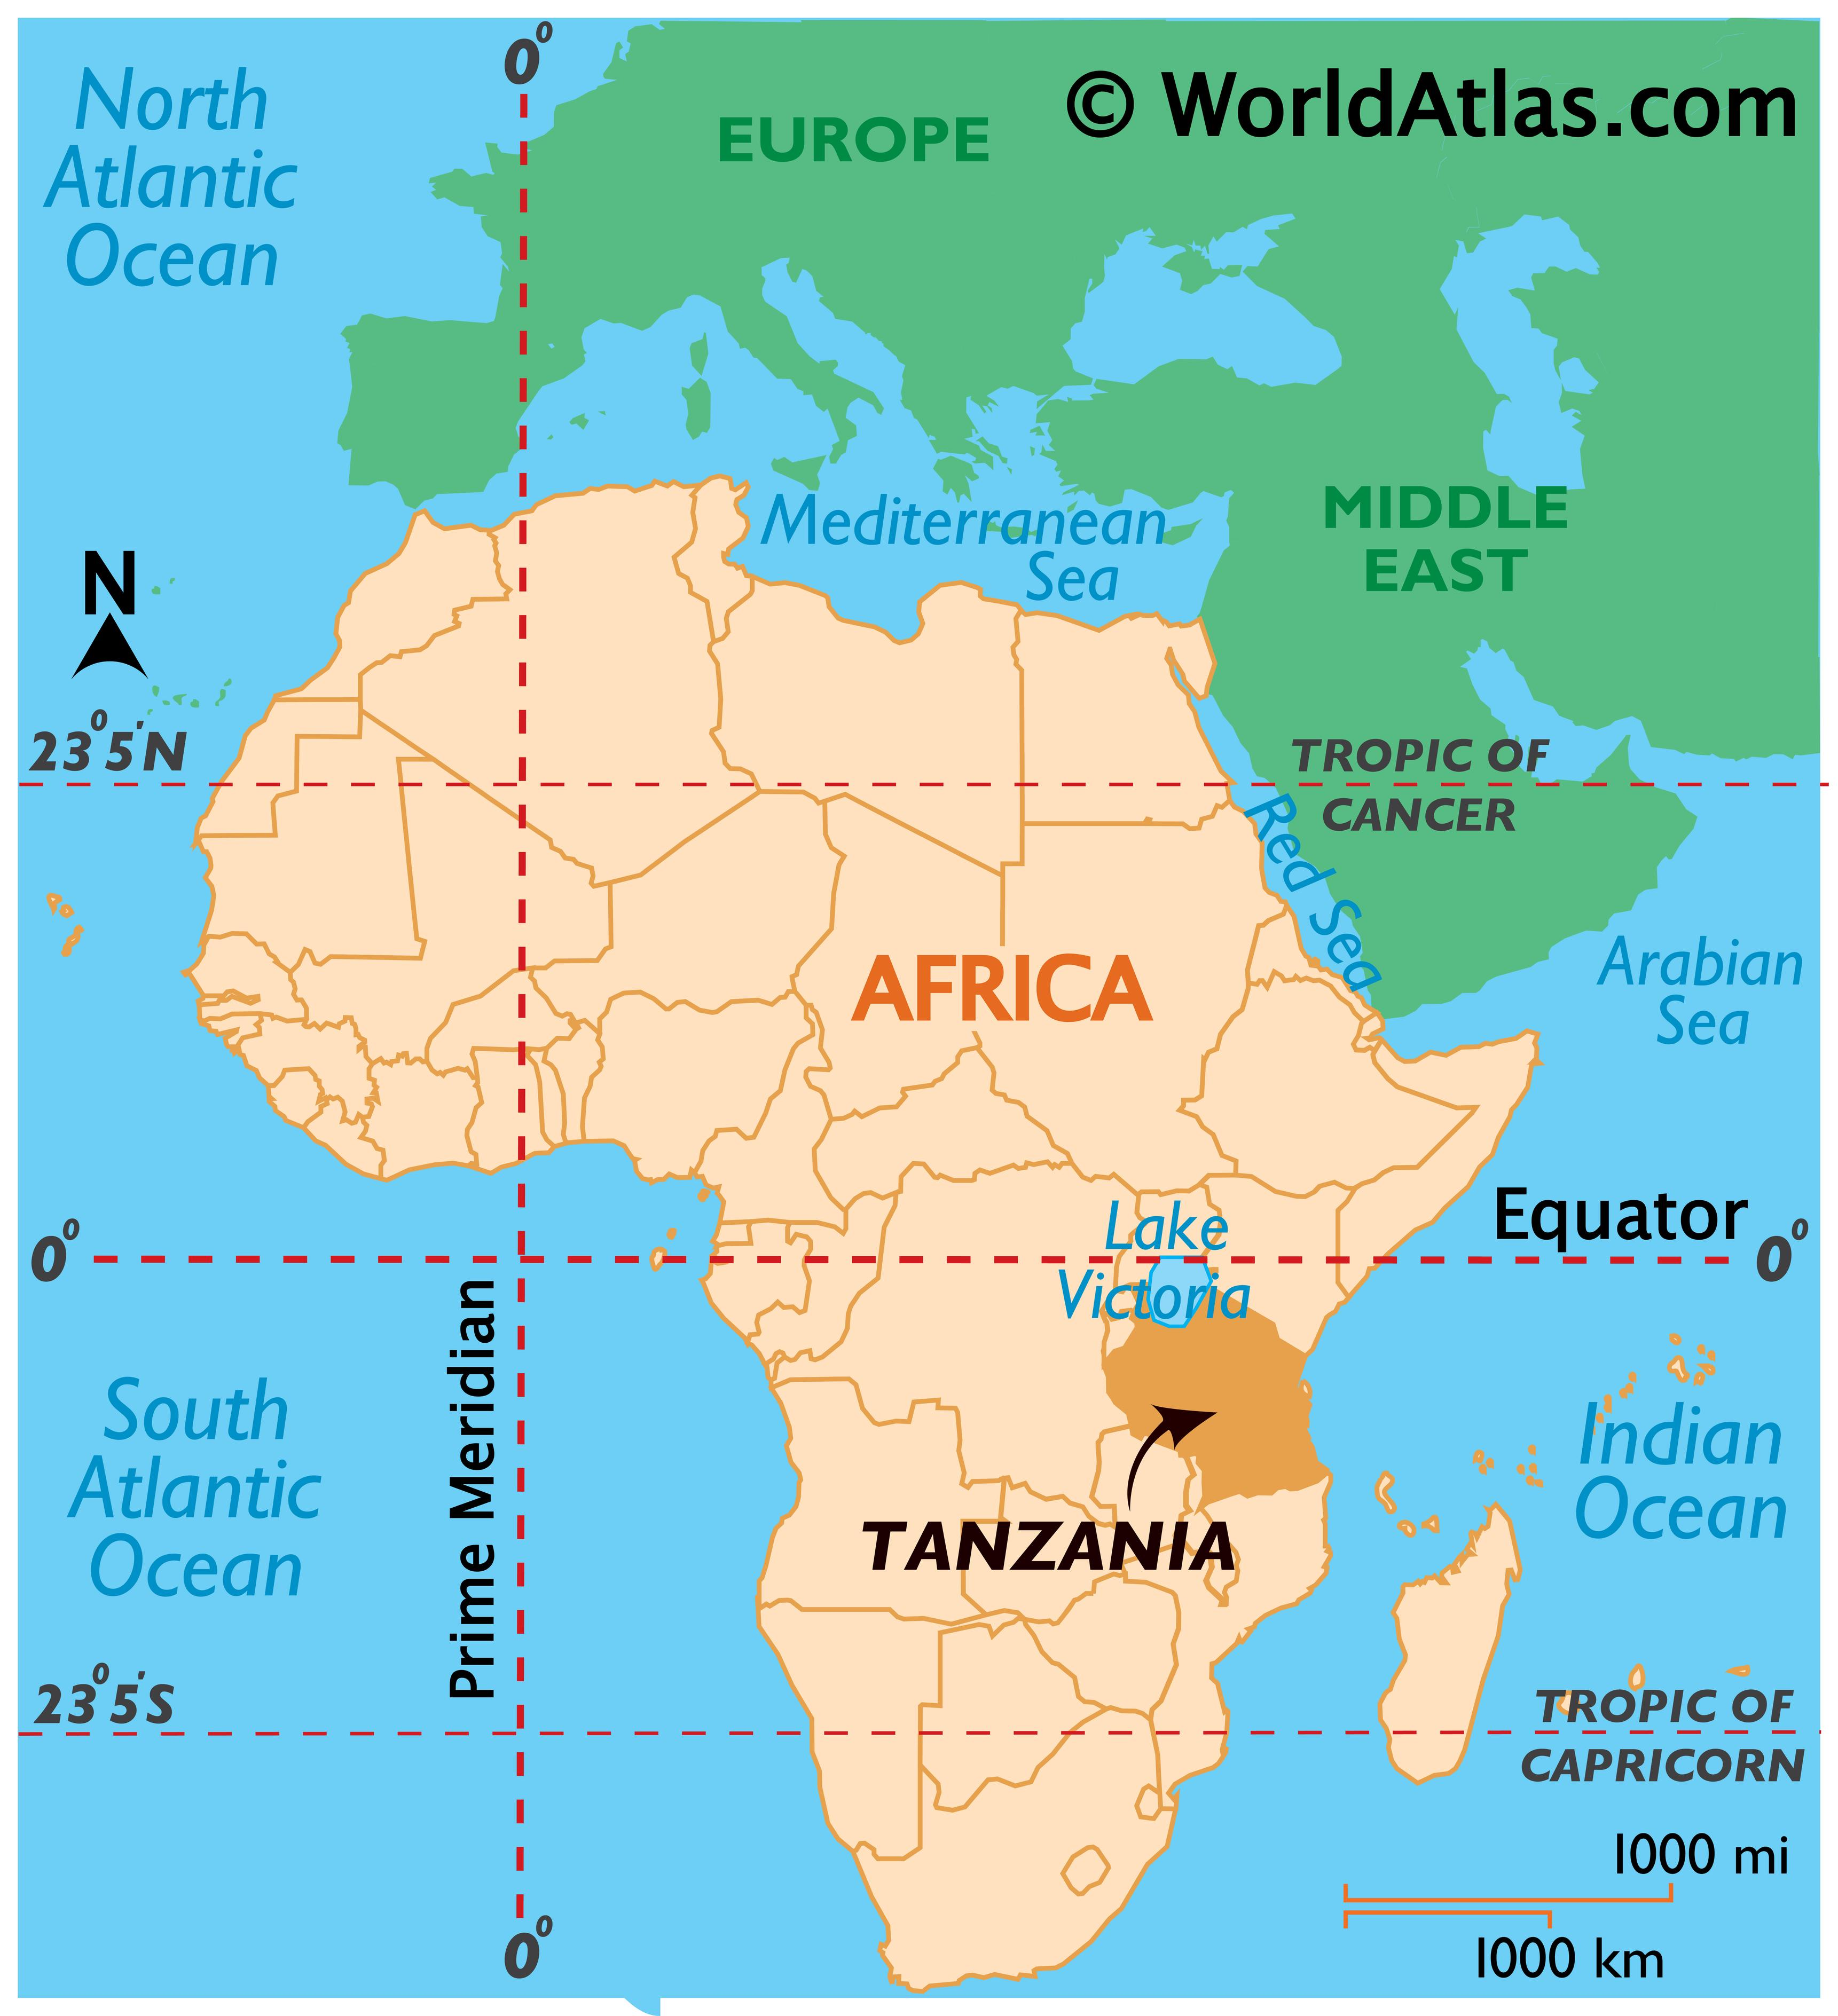 Where Is Tanzania?